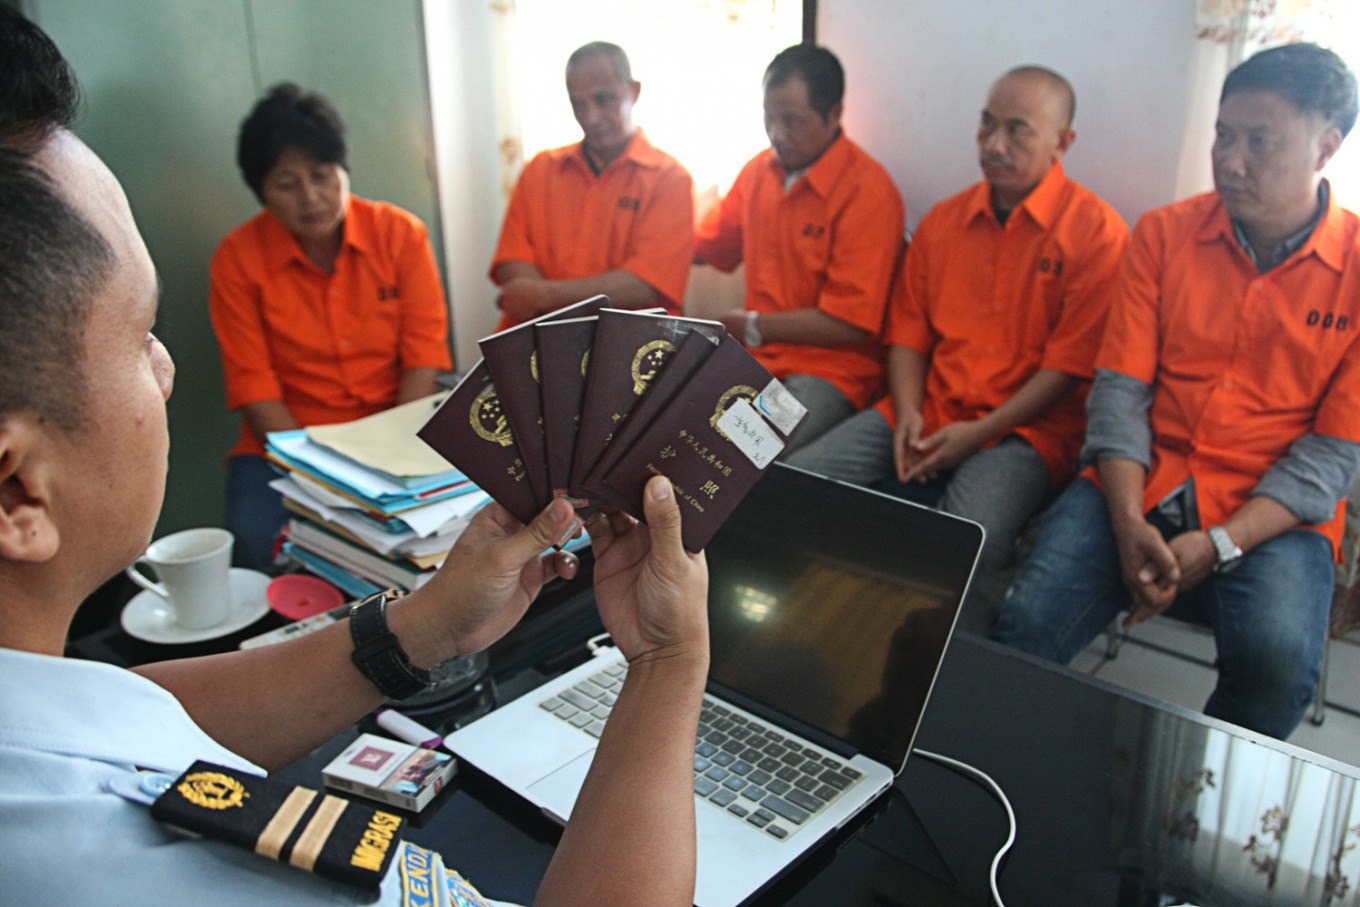 18 Chinese workers found breaching work permits in Bogor